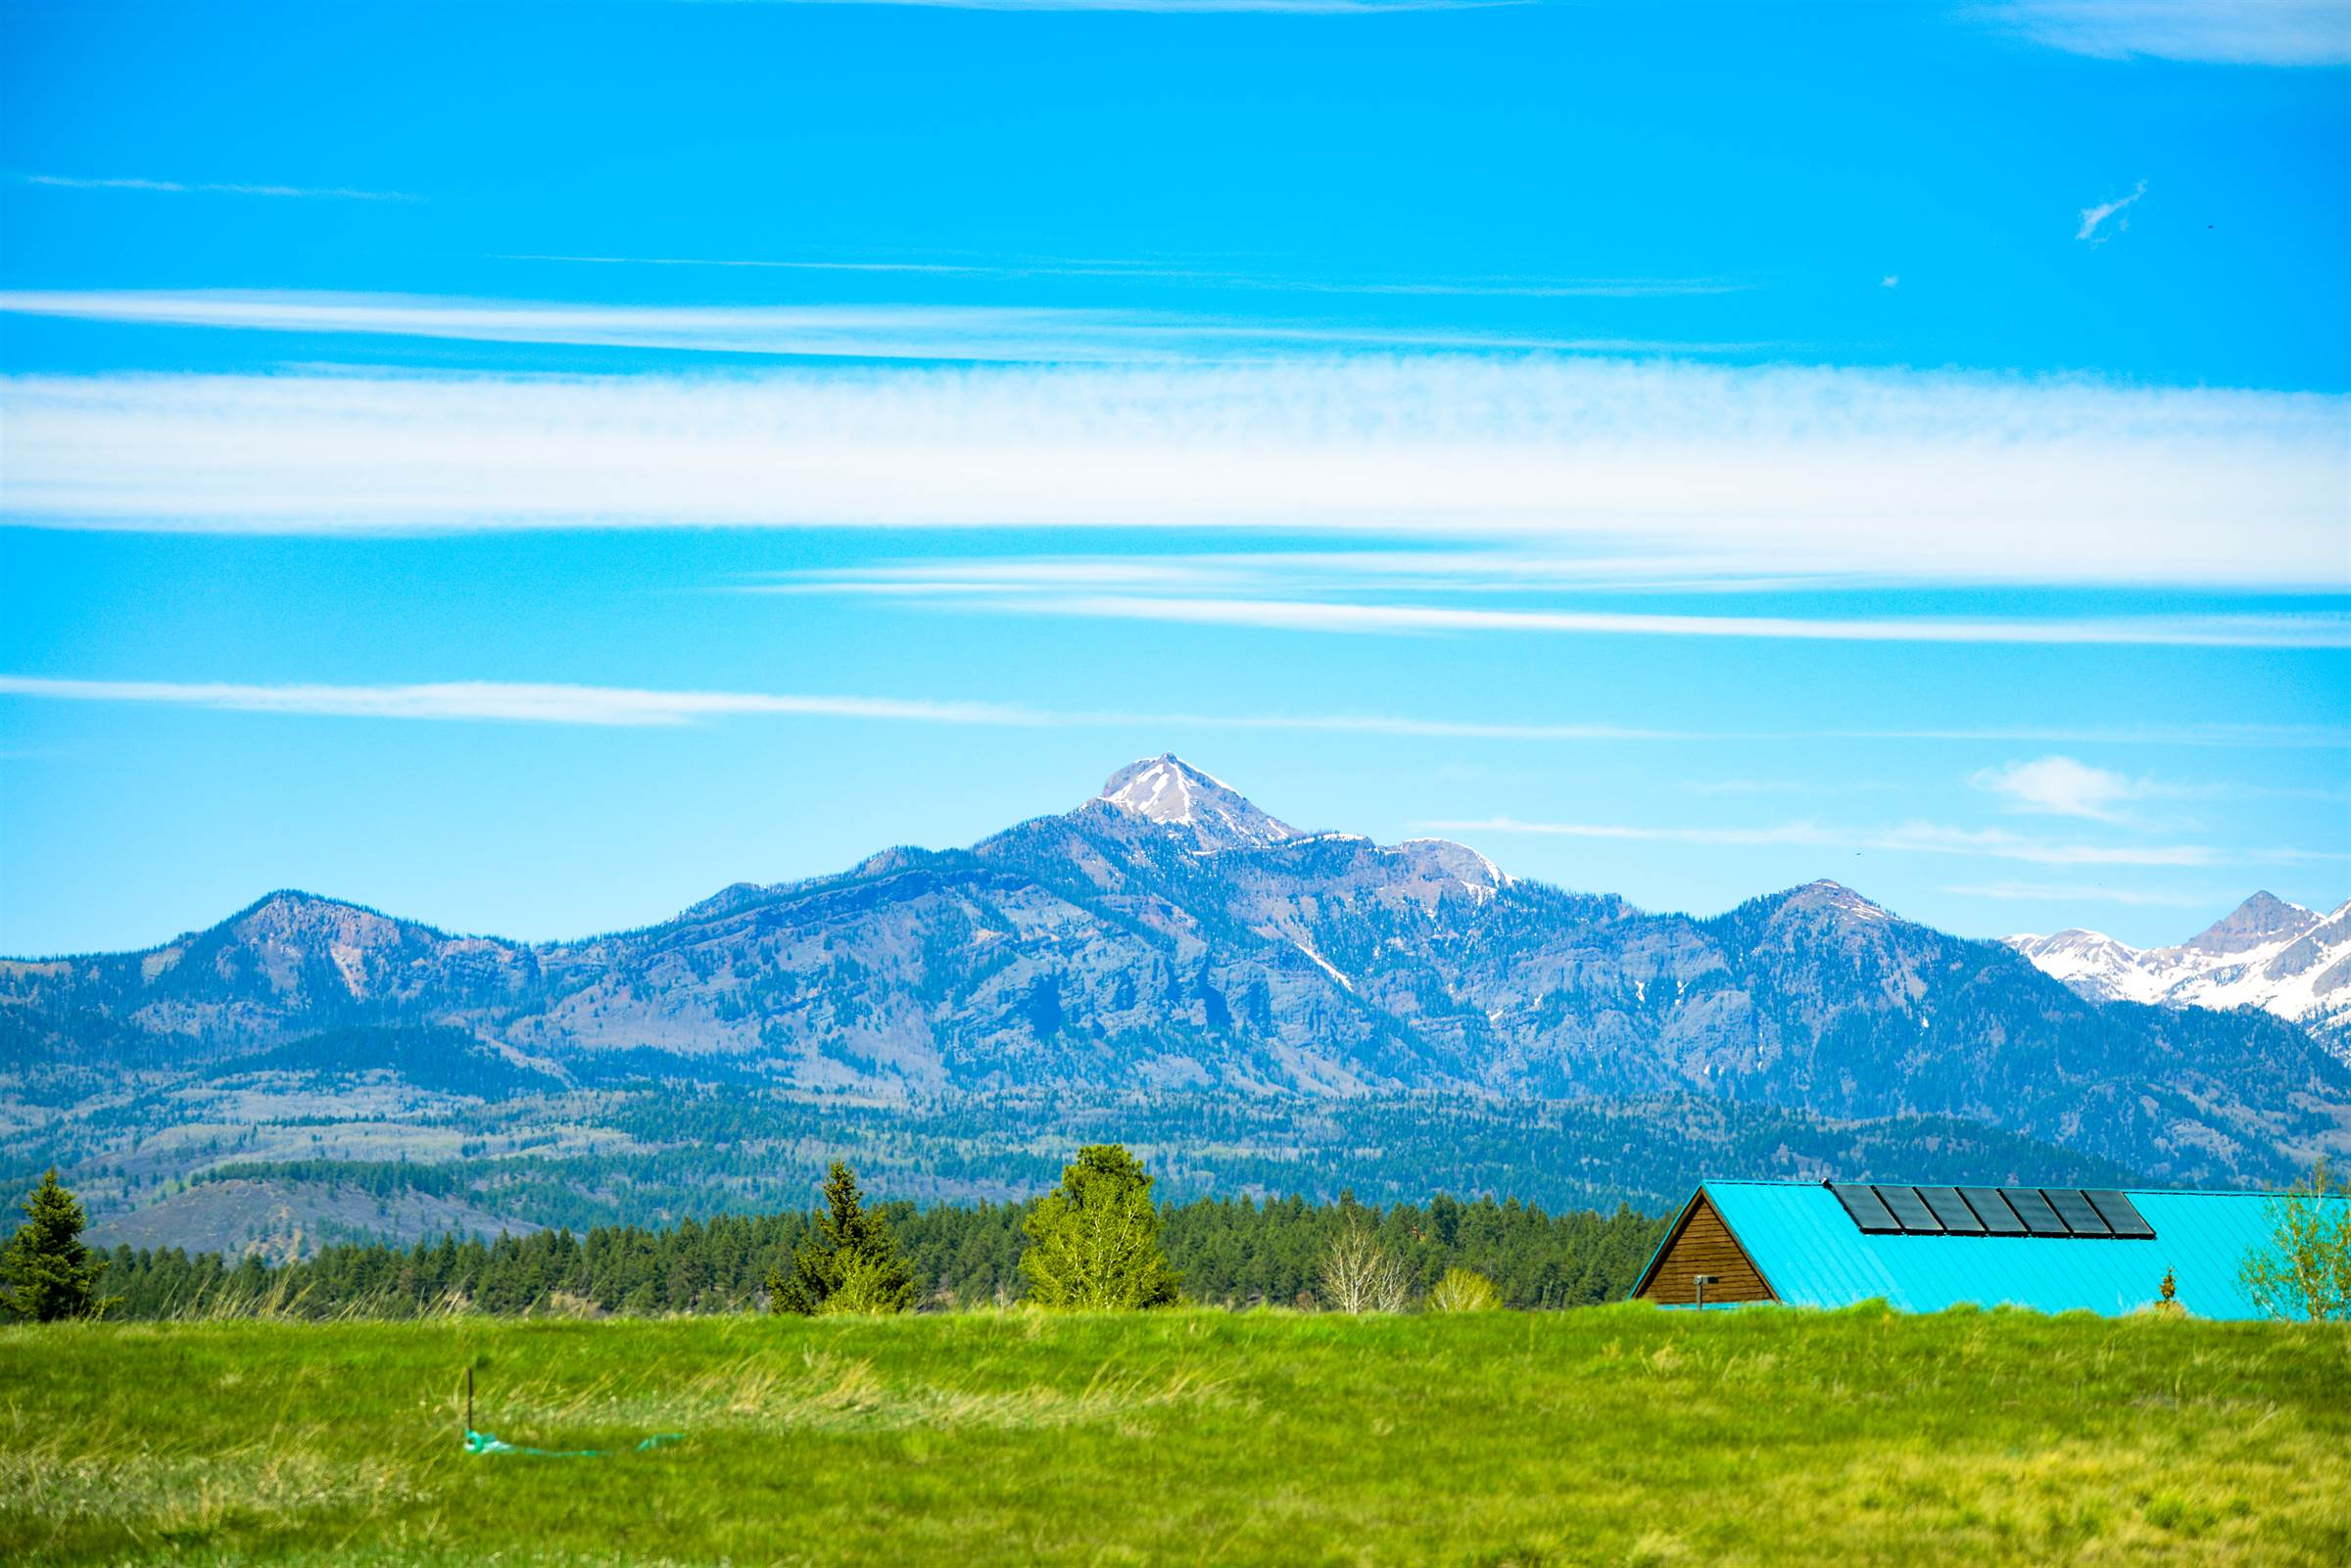 59 Greenbrier Dr., Pagosa Springs, CO 81147